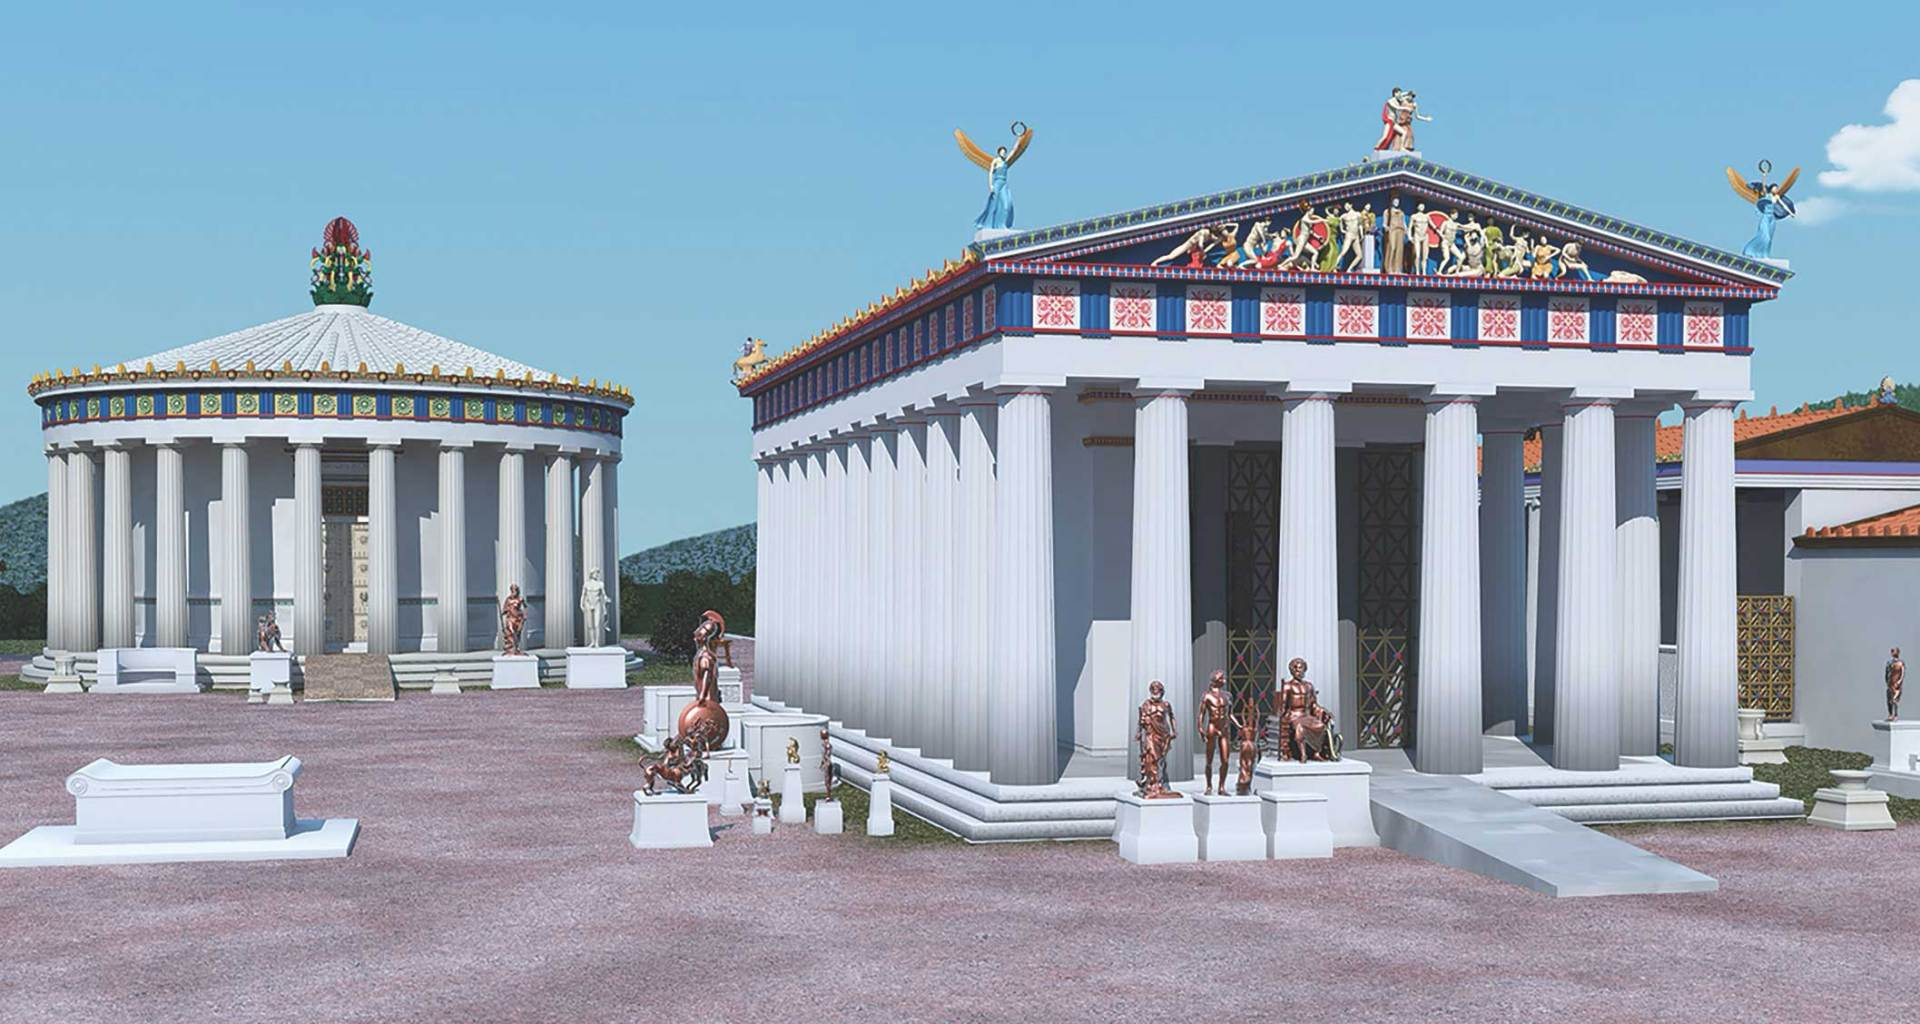 Illustration of ramps leading into temples of Ancient Greece.